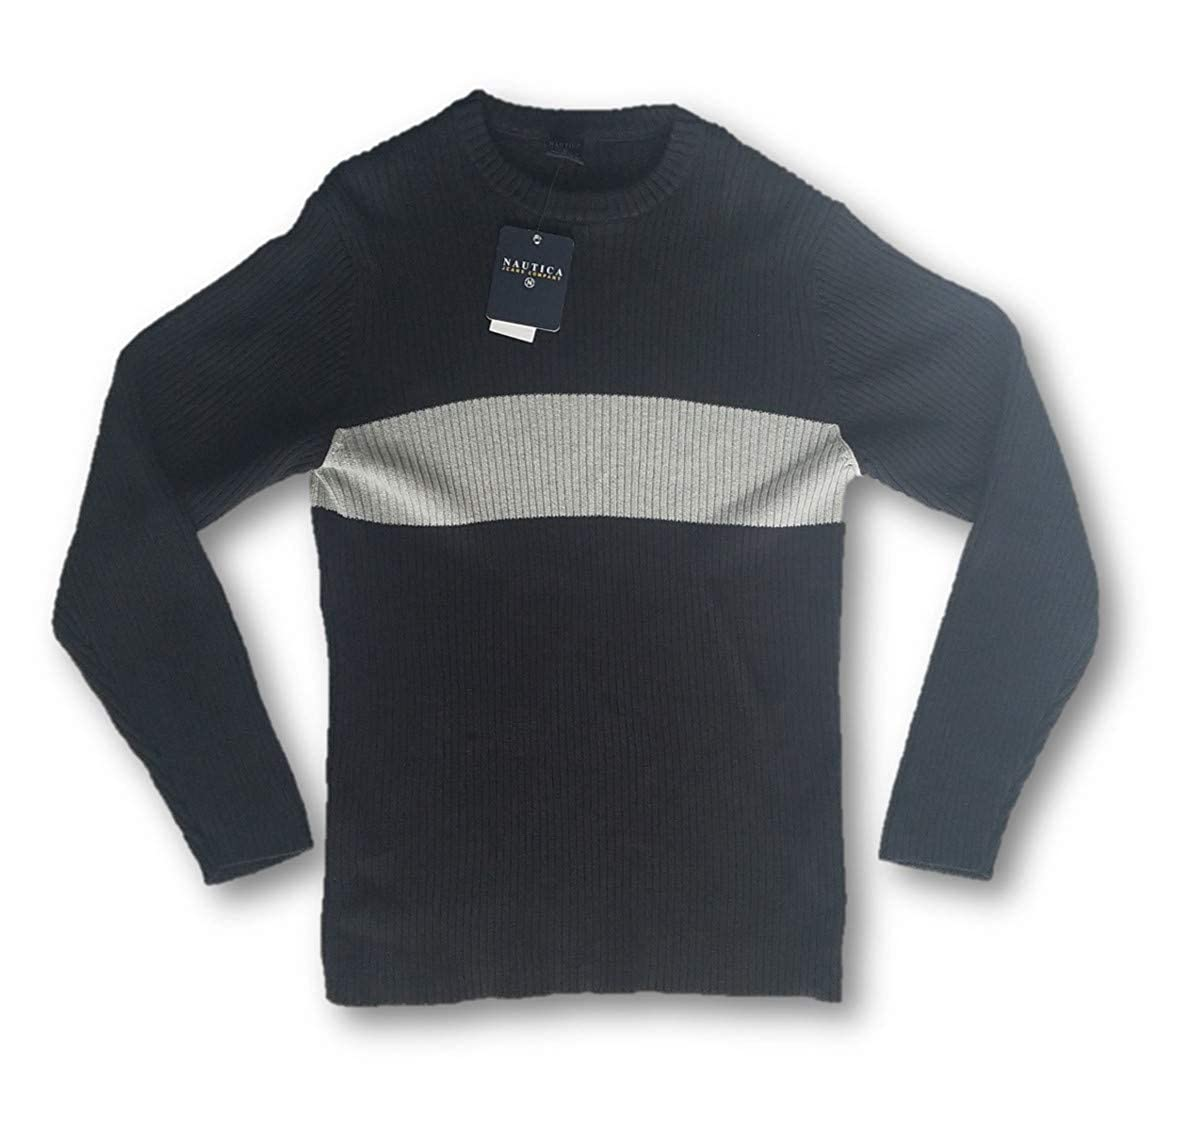 X-Large Charcoal Grey Nautica Mens Crew Neck Ribbed Sweater